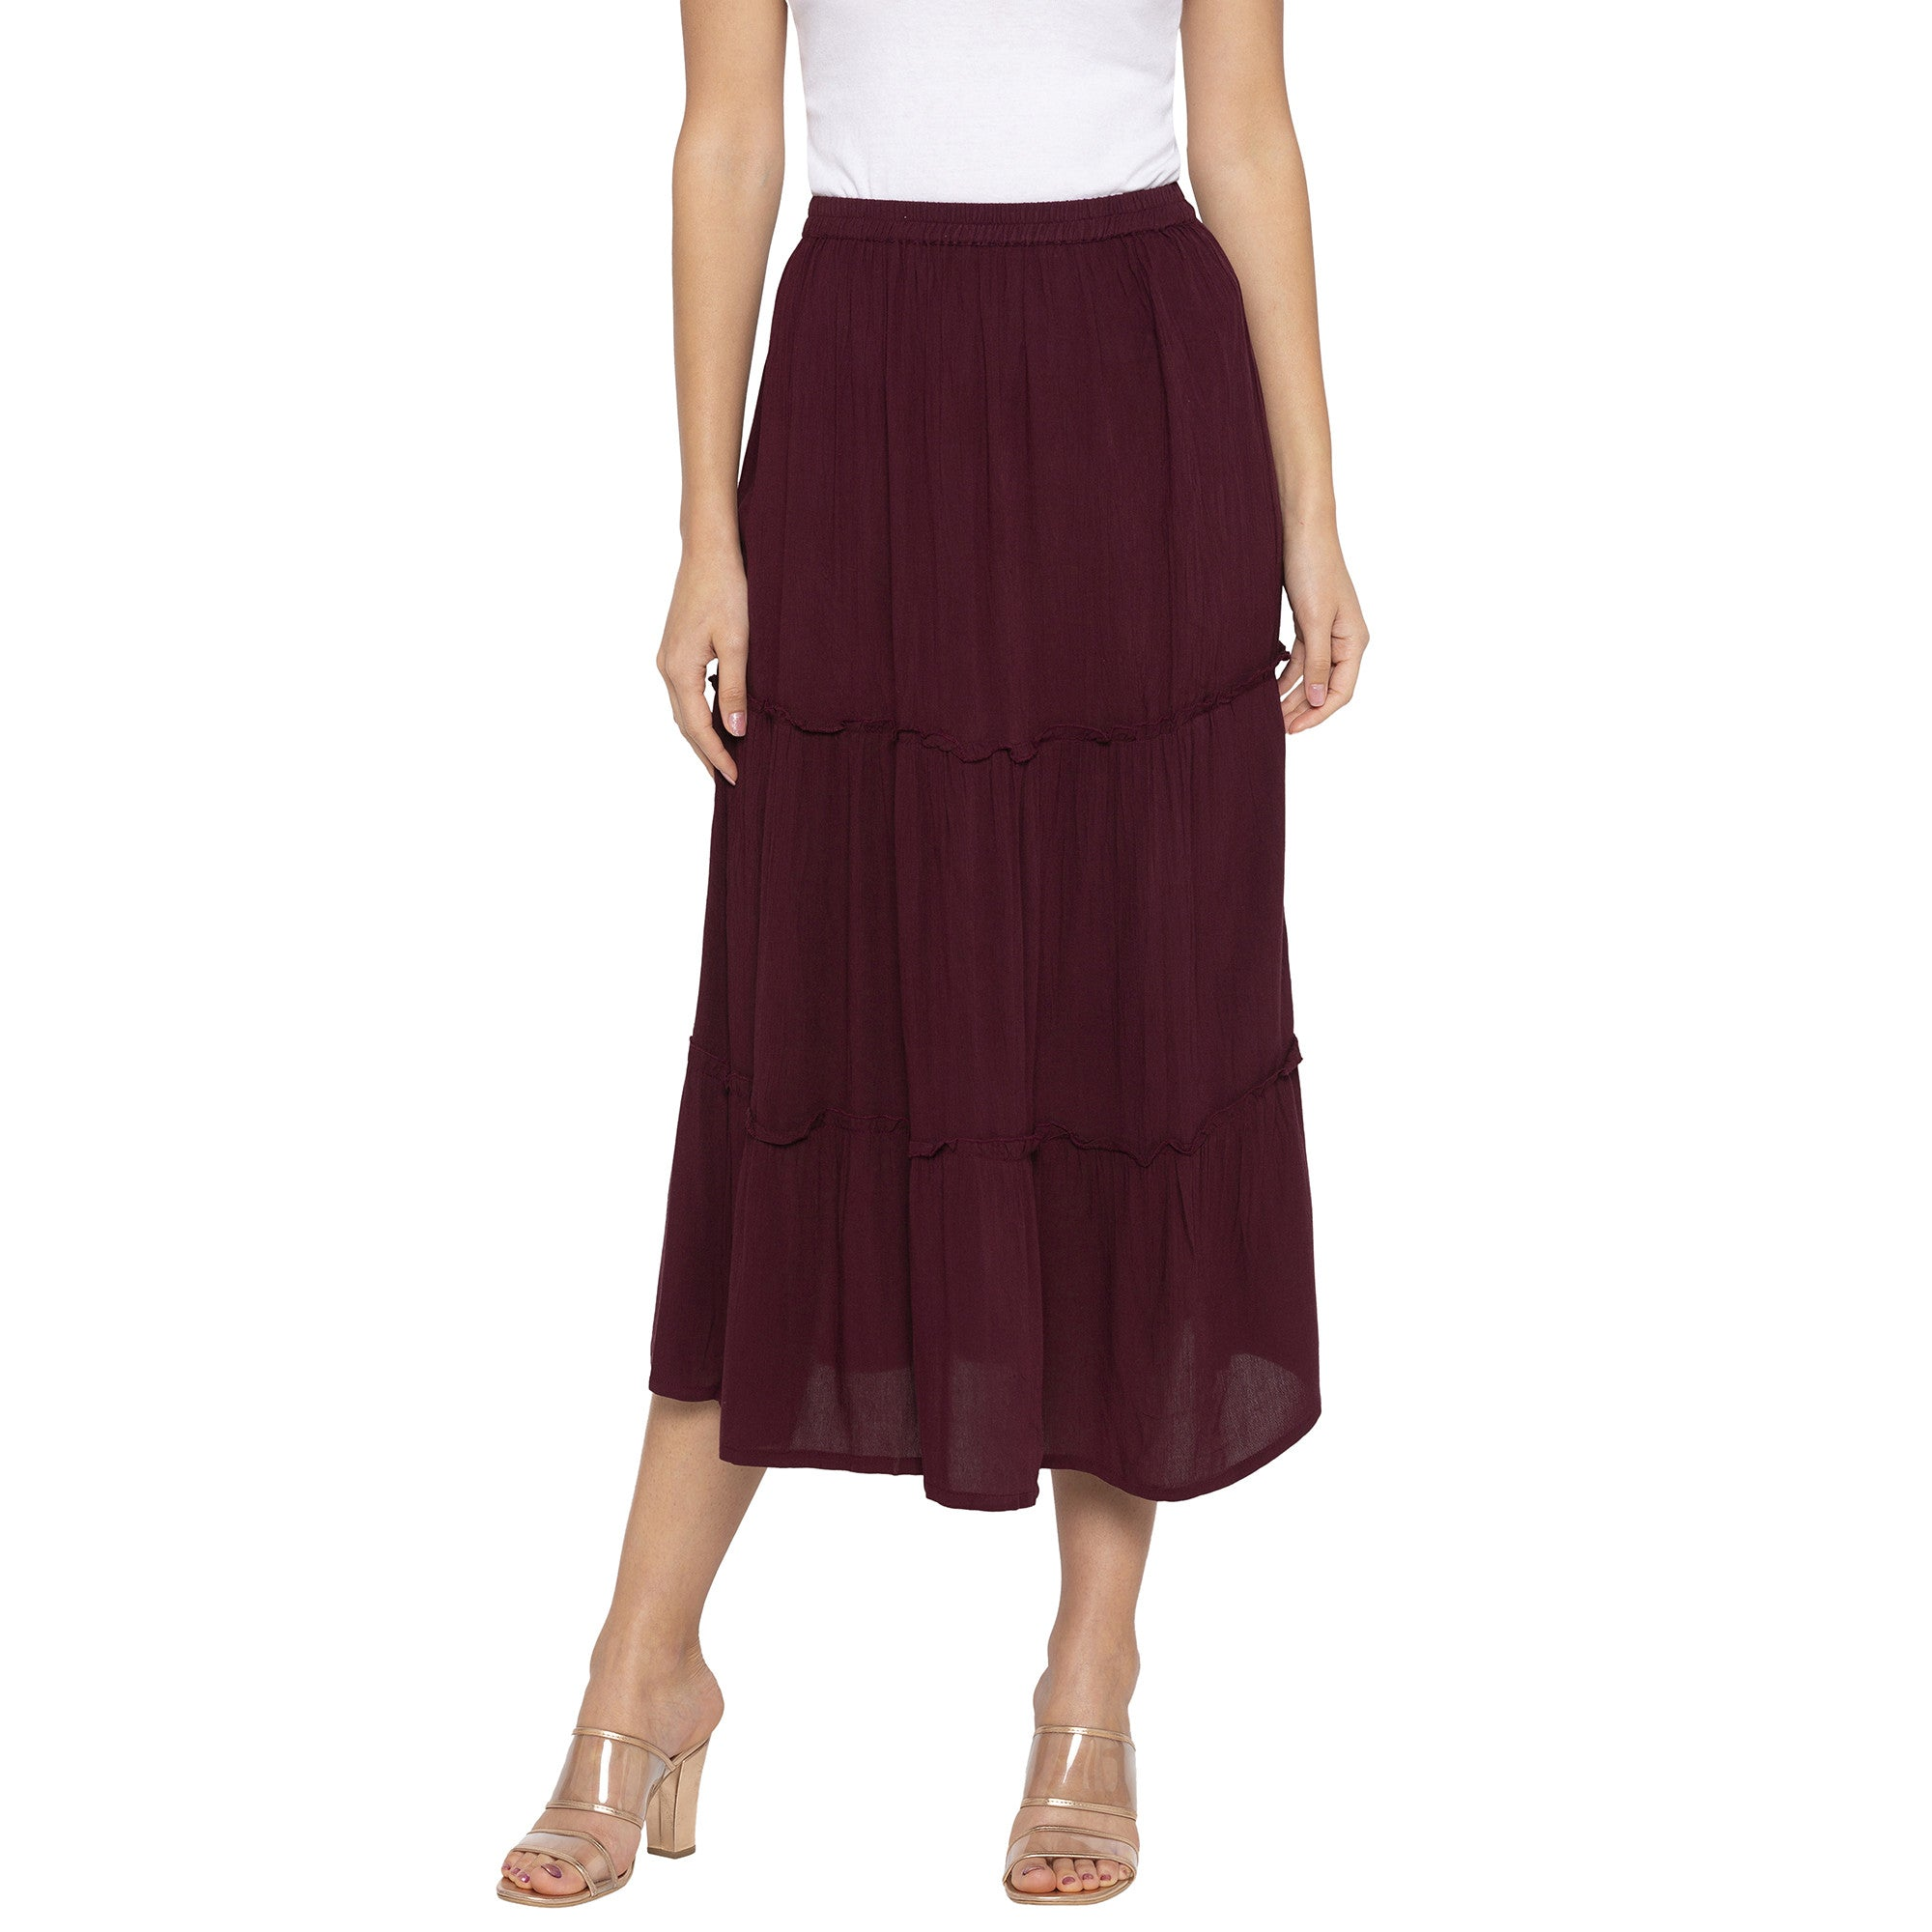 Burgundy Solid Skirts-1